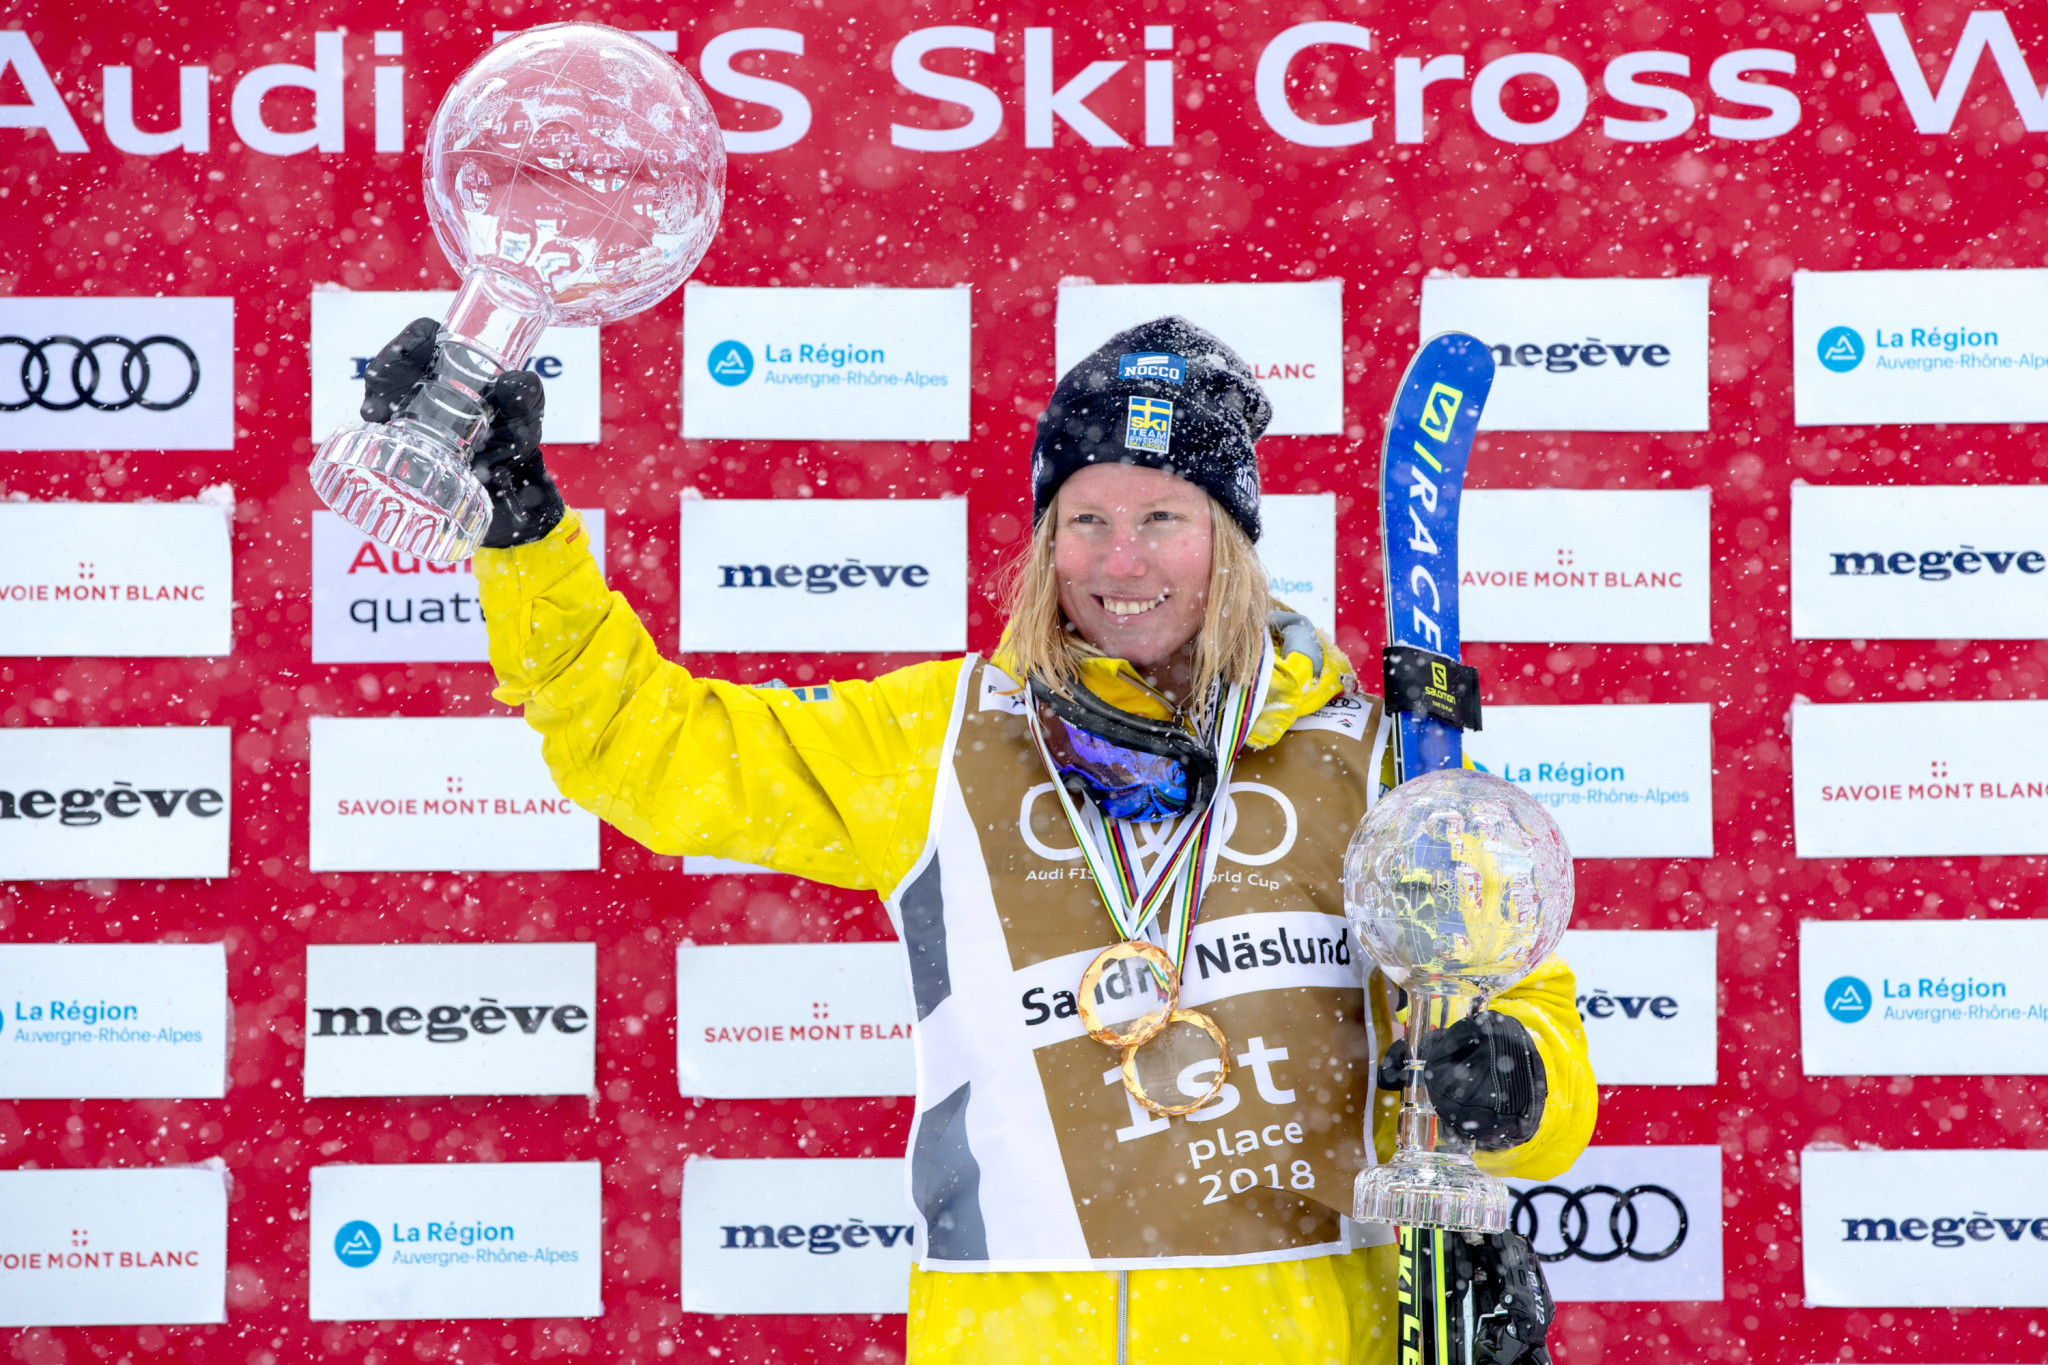 FIS Ski Cross World Cup set to continue in Idre Fjall with home favourite Naeslund out to maintain impressive form